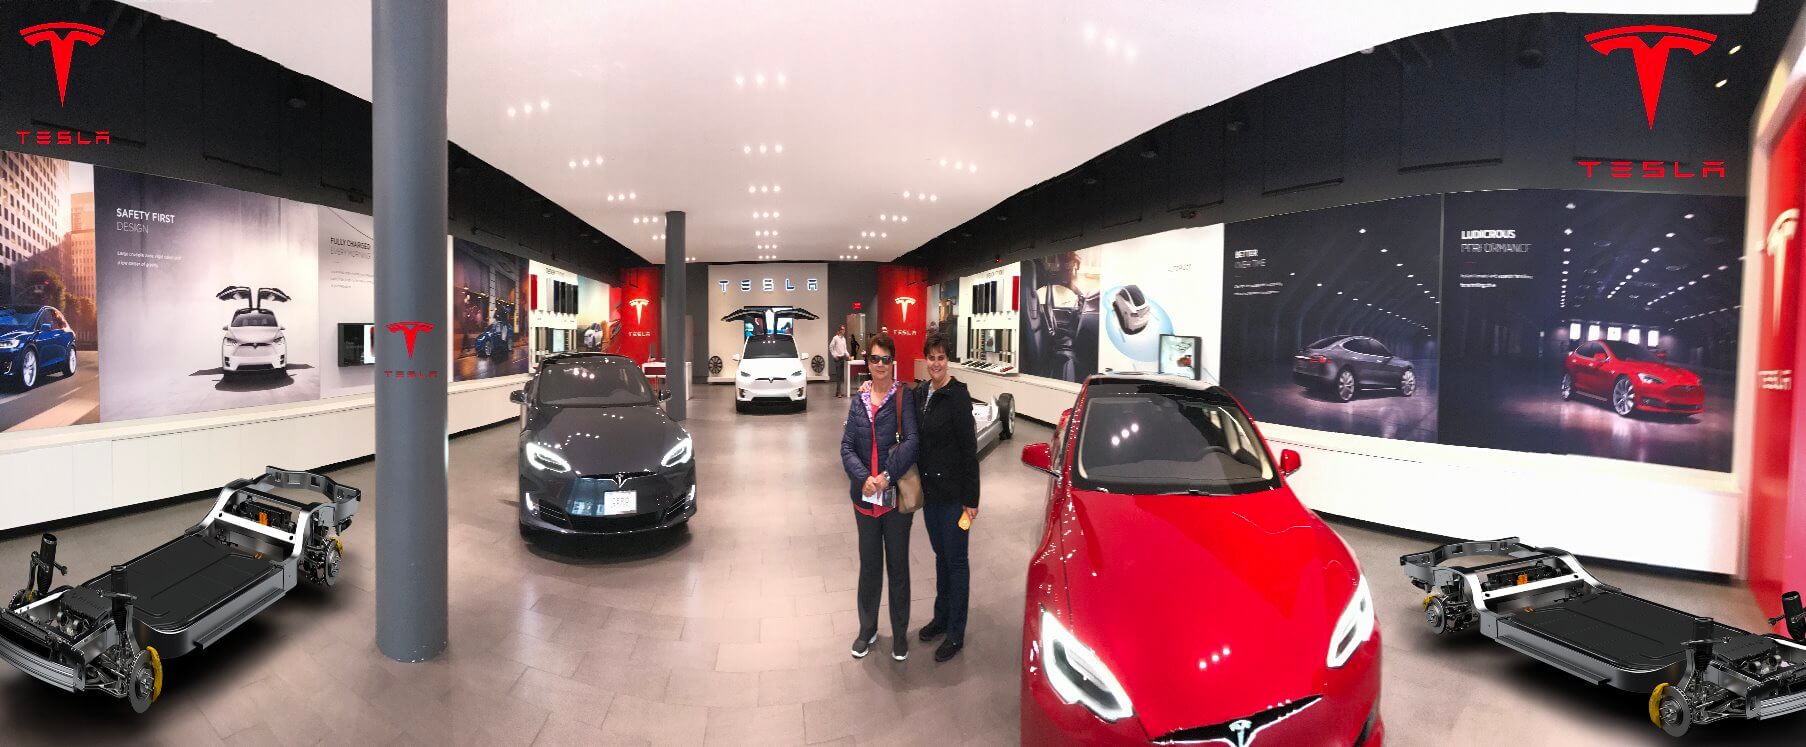 silicon_valley_innovation_tour_tesla_hq_santana_row_san_jose_ca